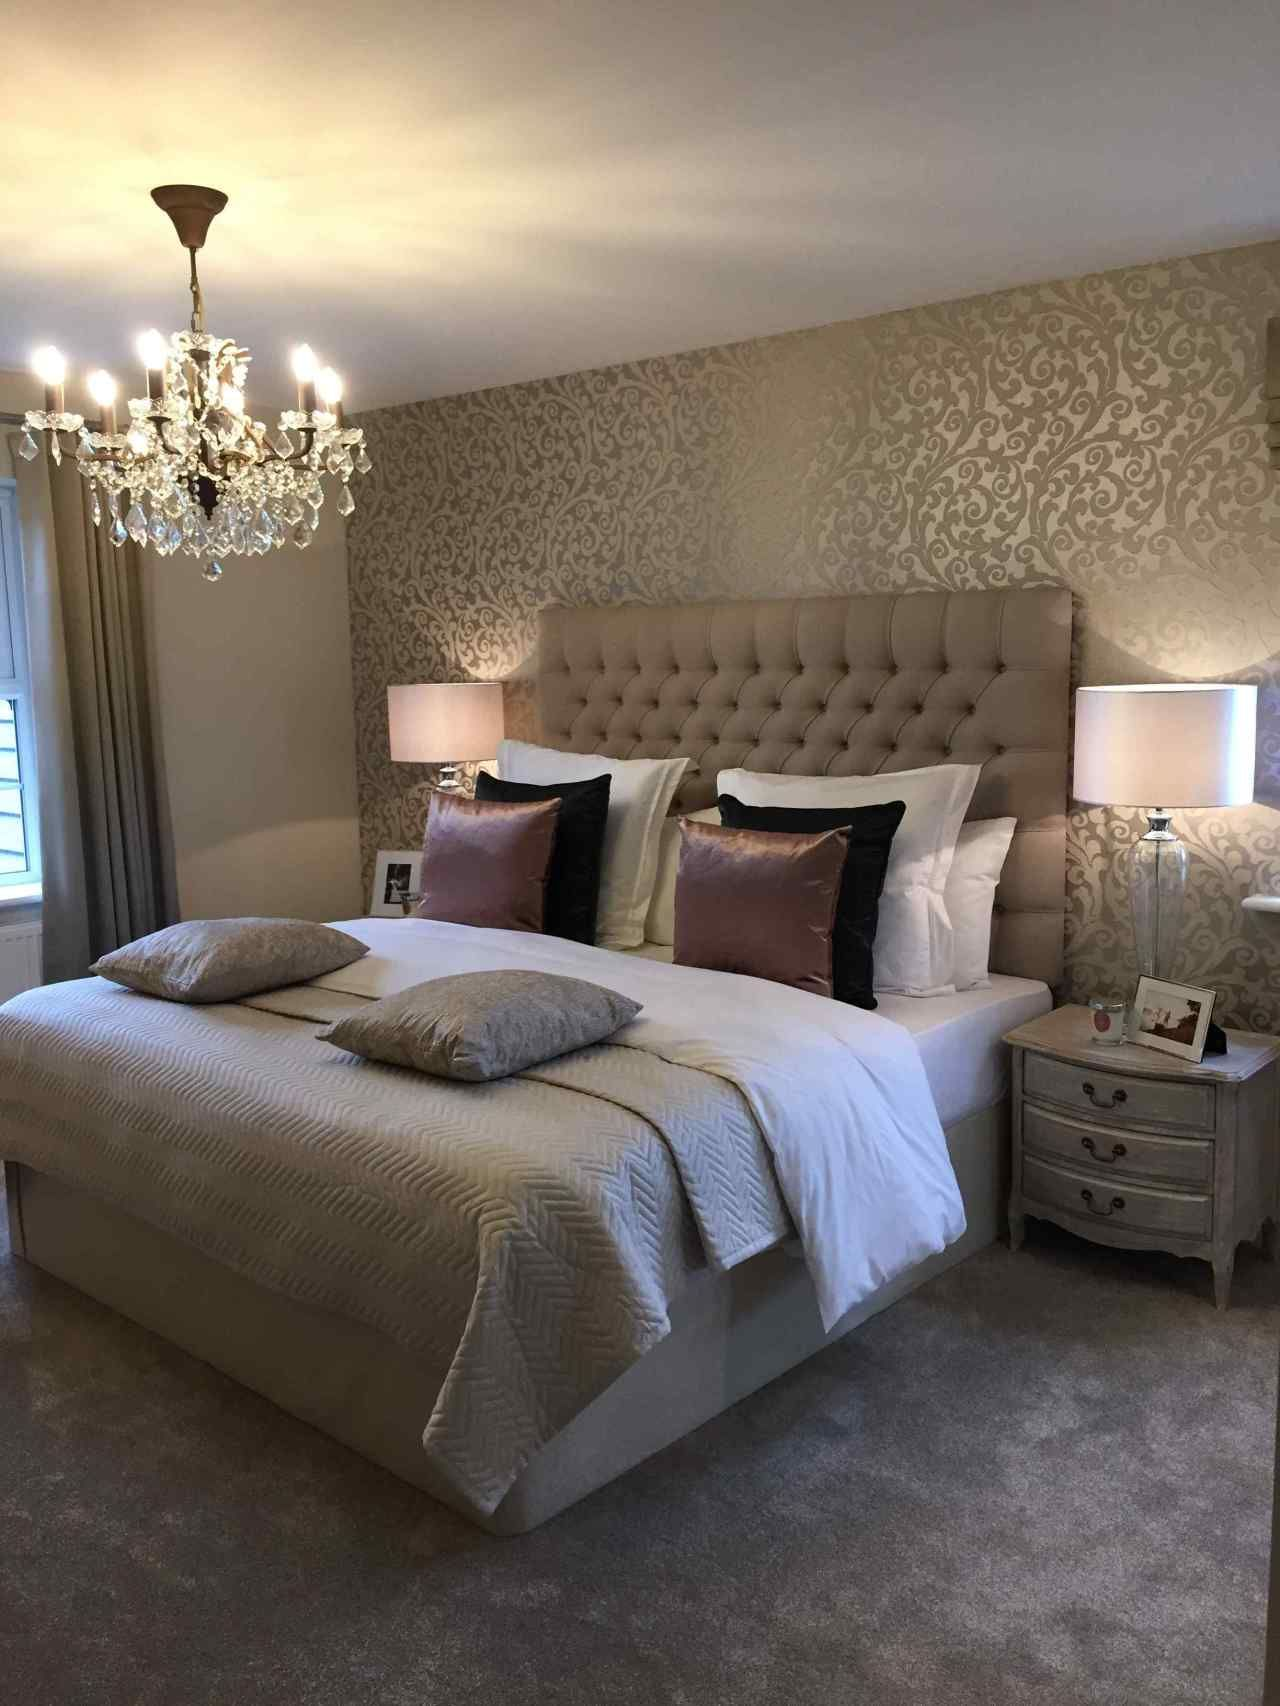 First Home Ideas Decor Couples Master Bedrooms Headboards Awesome Pin By Nathalie Vrx On Idees Pour La M Bedroom Simple Interior